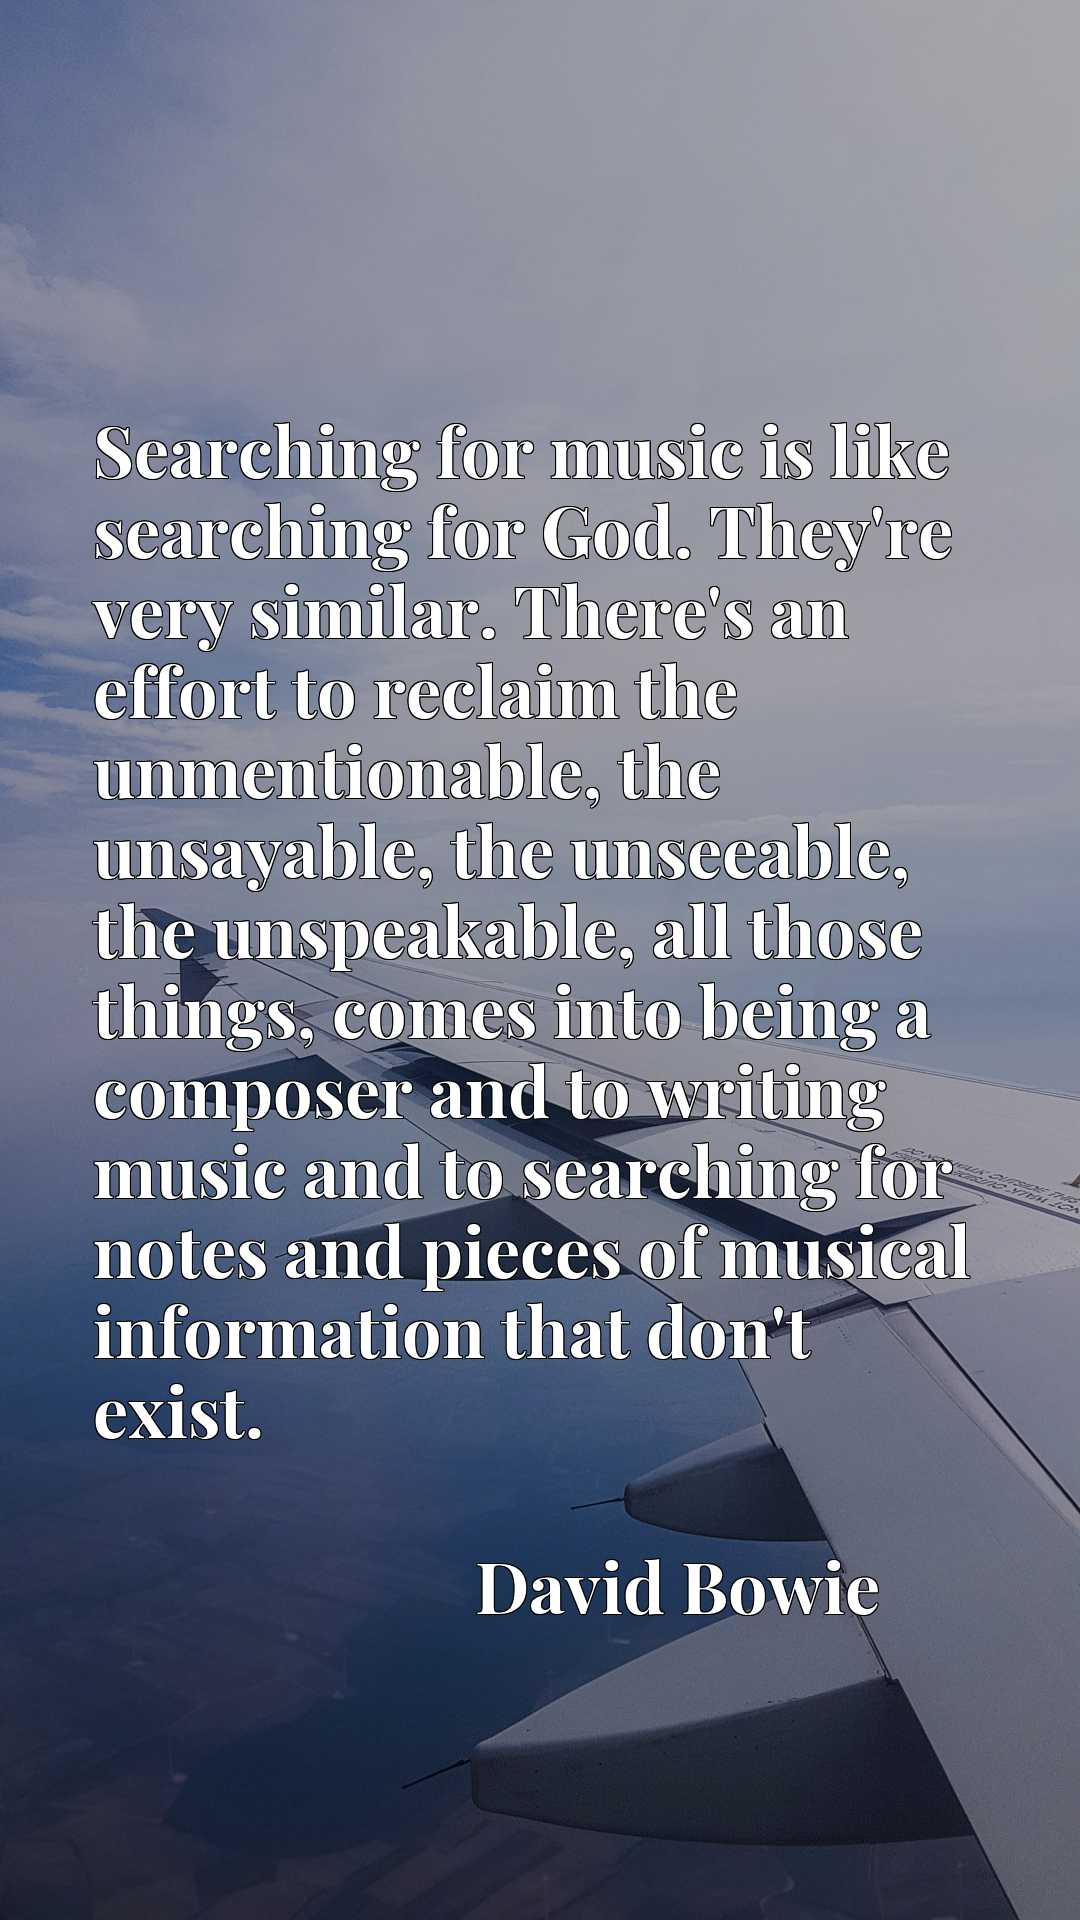 Searching for music is like searching for God. They're very similar. There's an effort to reclaim the unmentionable, the unsayable, the unseeable, the unspeakable, all those things, comes into being a composer and to writing music and to searching for notes and pieces of musical information that don't exist.